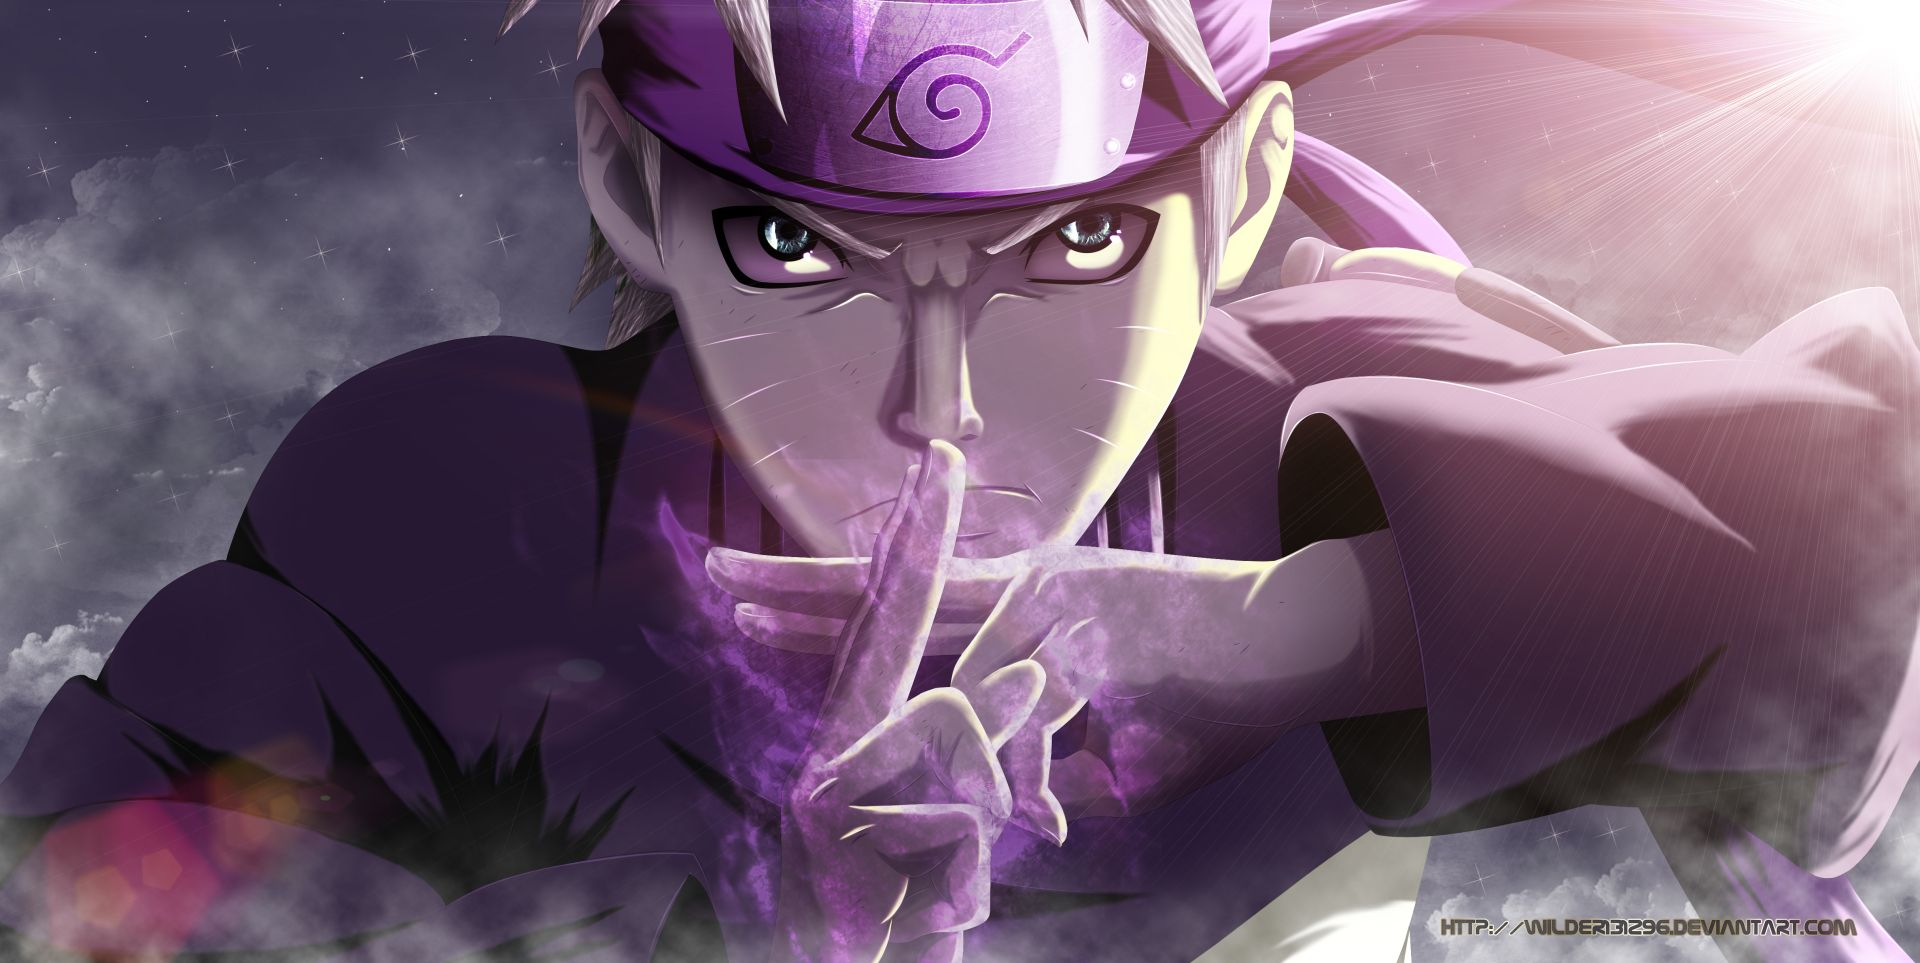 4855x2436 Naruto New Powers Wallpaper Background Image View Download Comment And Rate Wallpaper Abys Naruto Wallpaper Hd Anime Wallpapers Anime Wallpaper